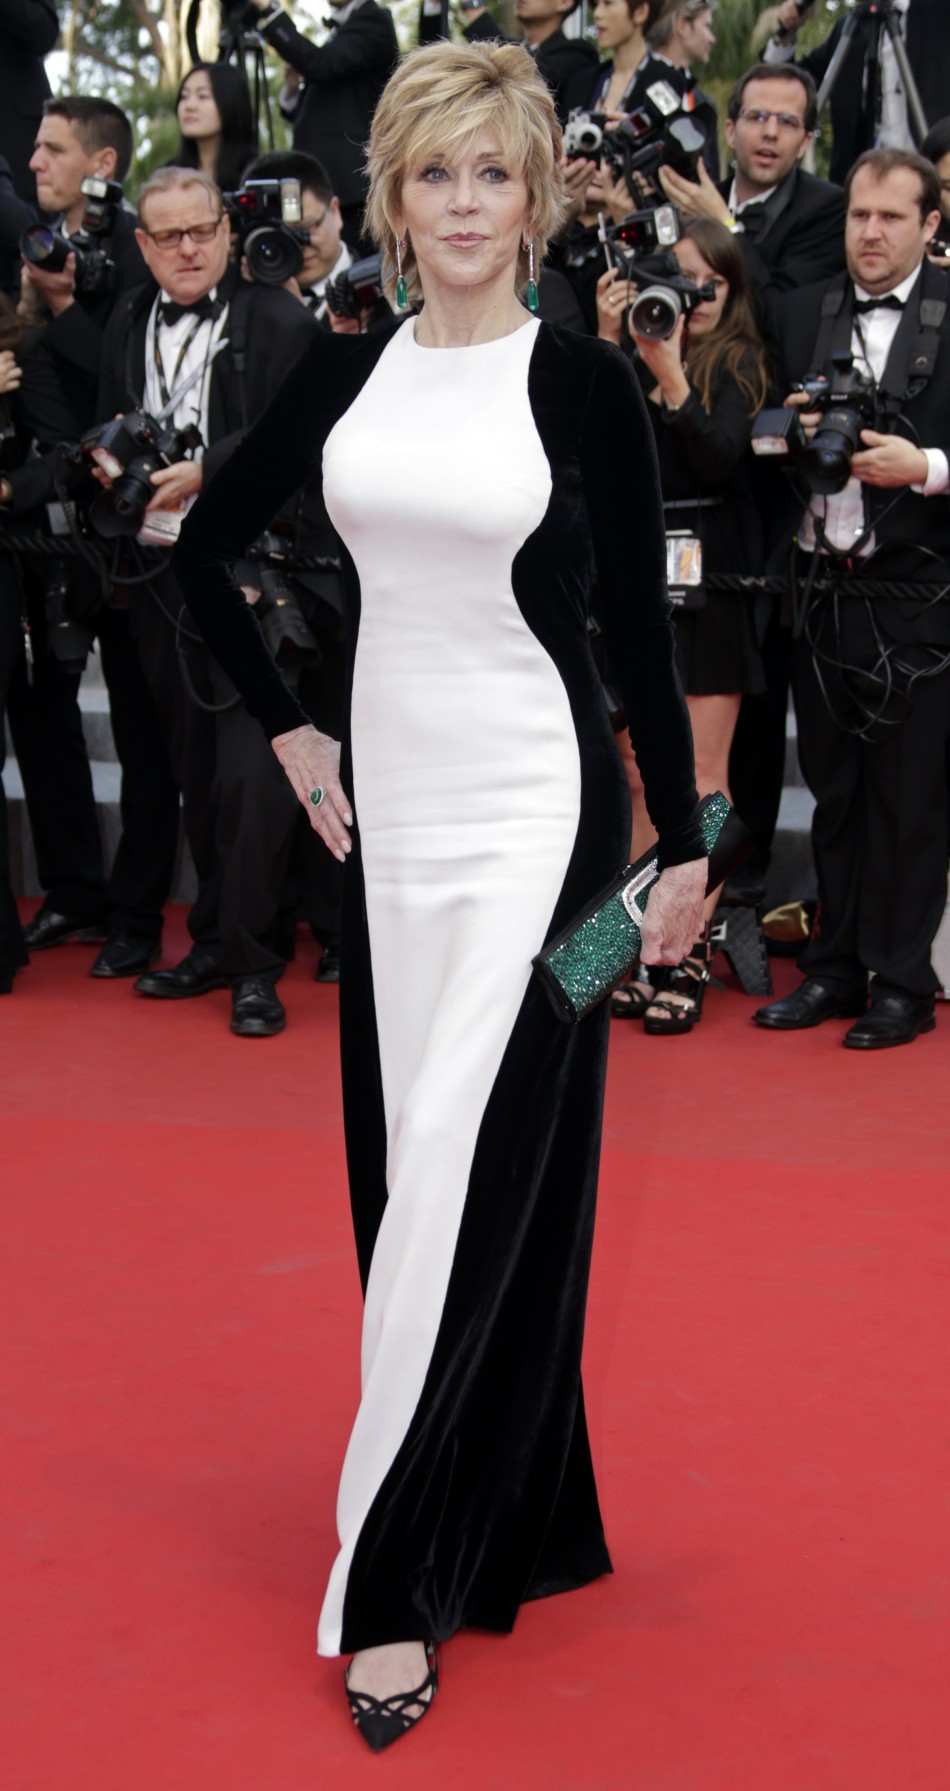 Actress Fonda arrives on the red carpet for the screeing of the film De rouille et d'os at the 65th Cannes Film Festival